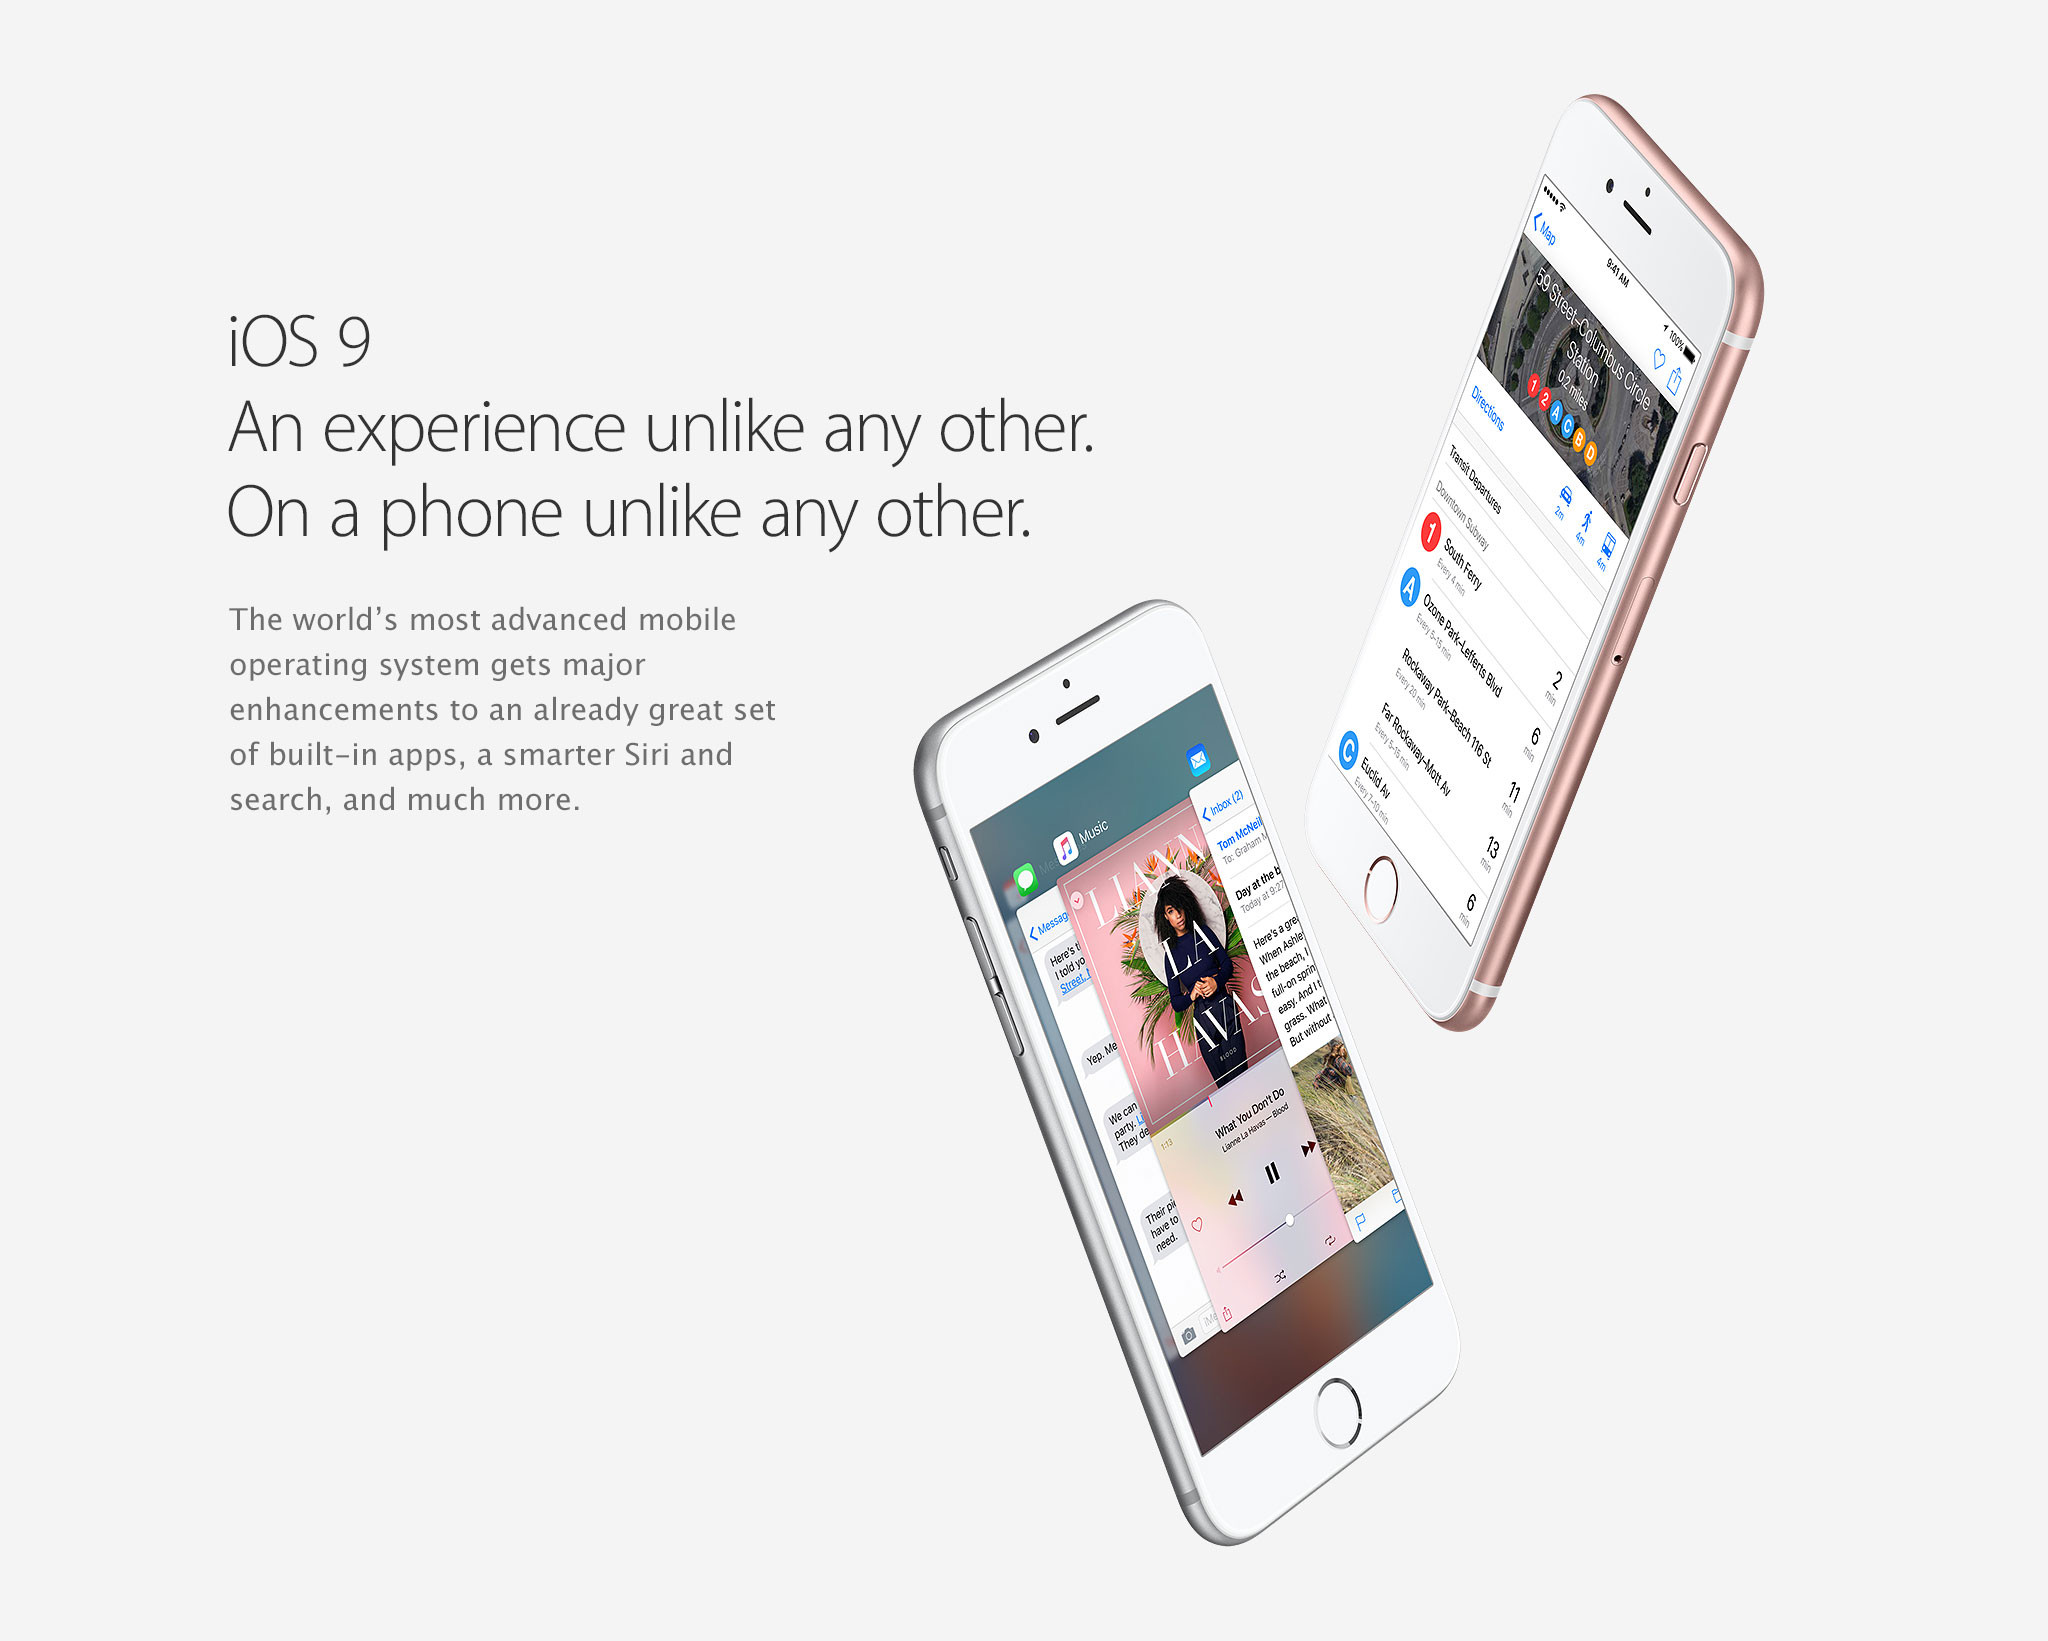 iOS 9. An experience unlike any other. On a phone unlike any other. The world's most advanced mobile operating system gets major enhancements to an already great set of built-in apps, a smarter Siri and search, and much more.